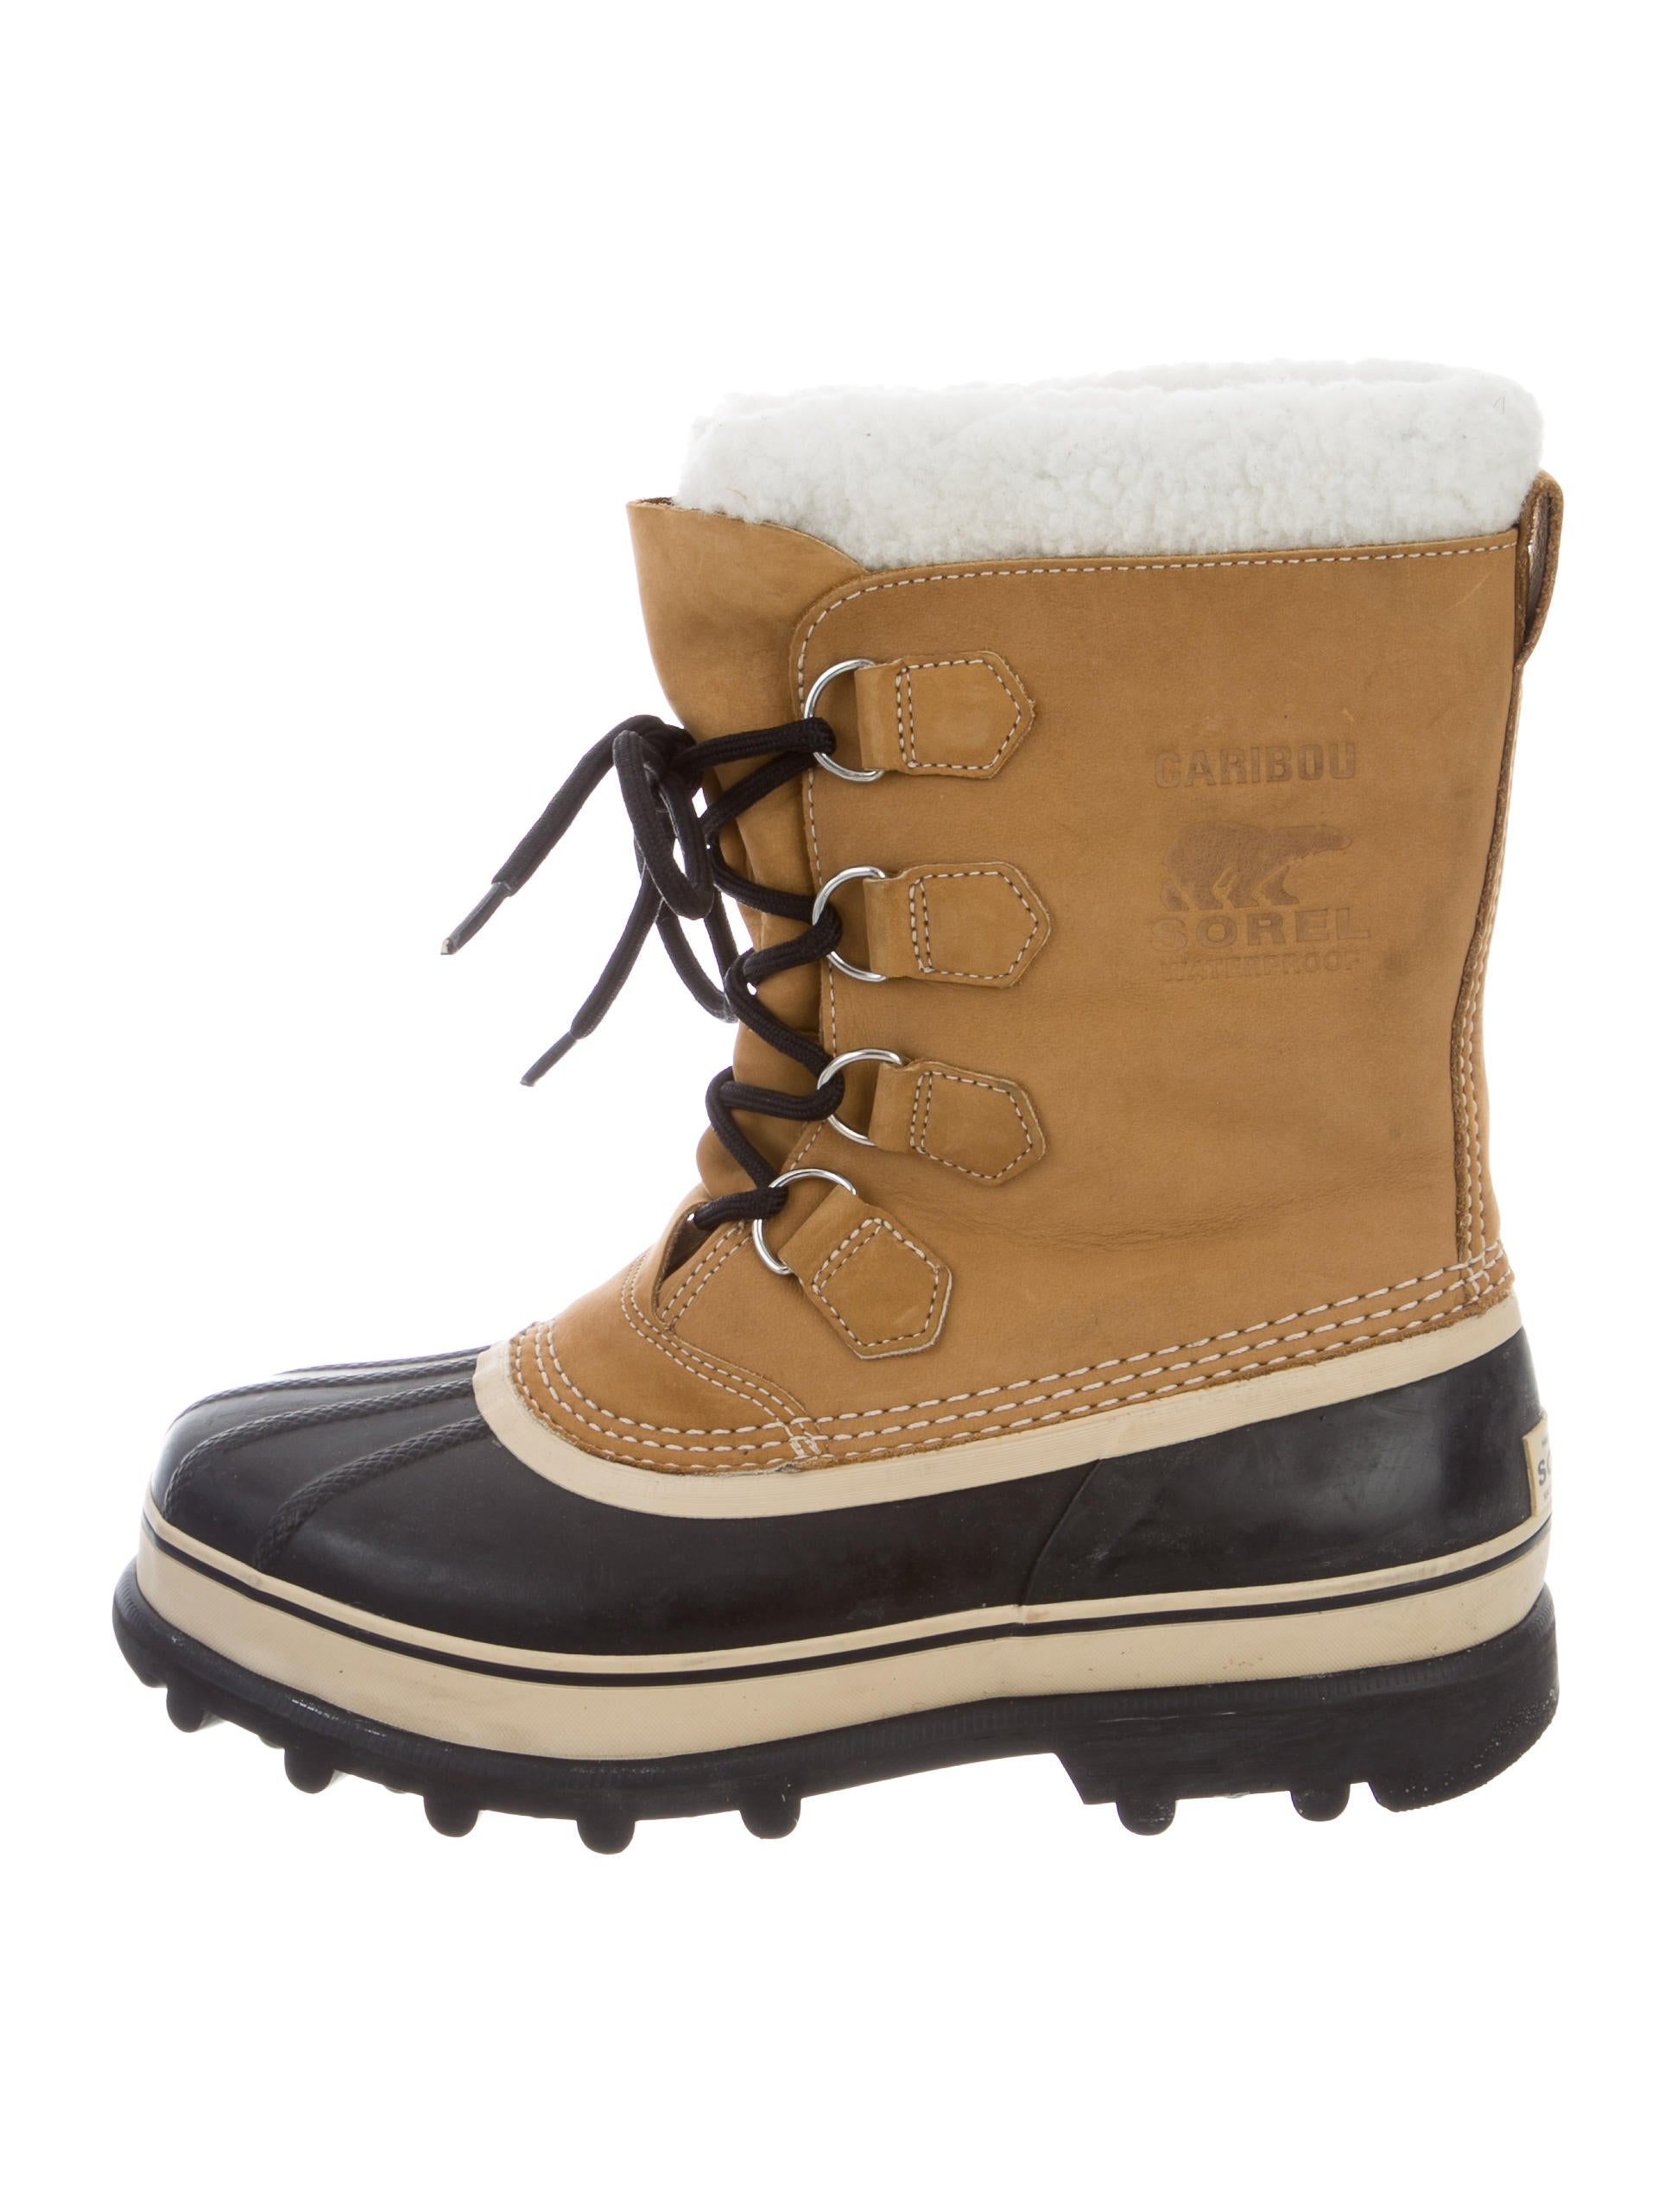 sorel suede waterproof boots shoes wsorl20174 the